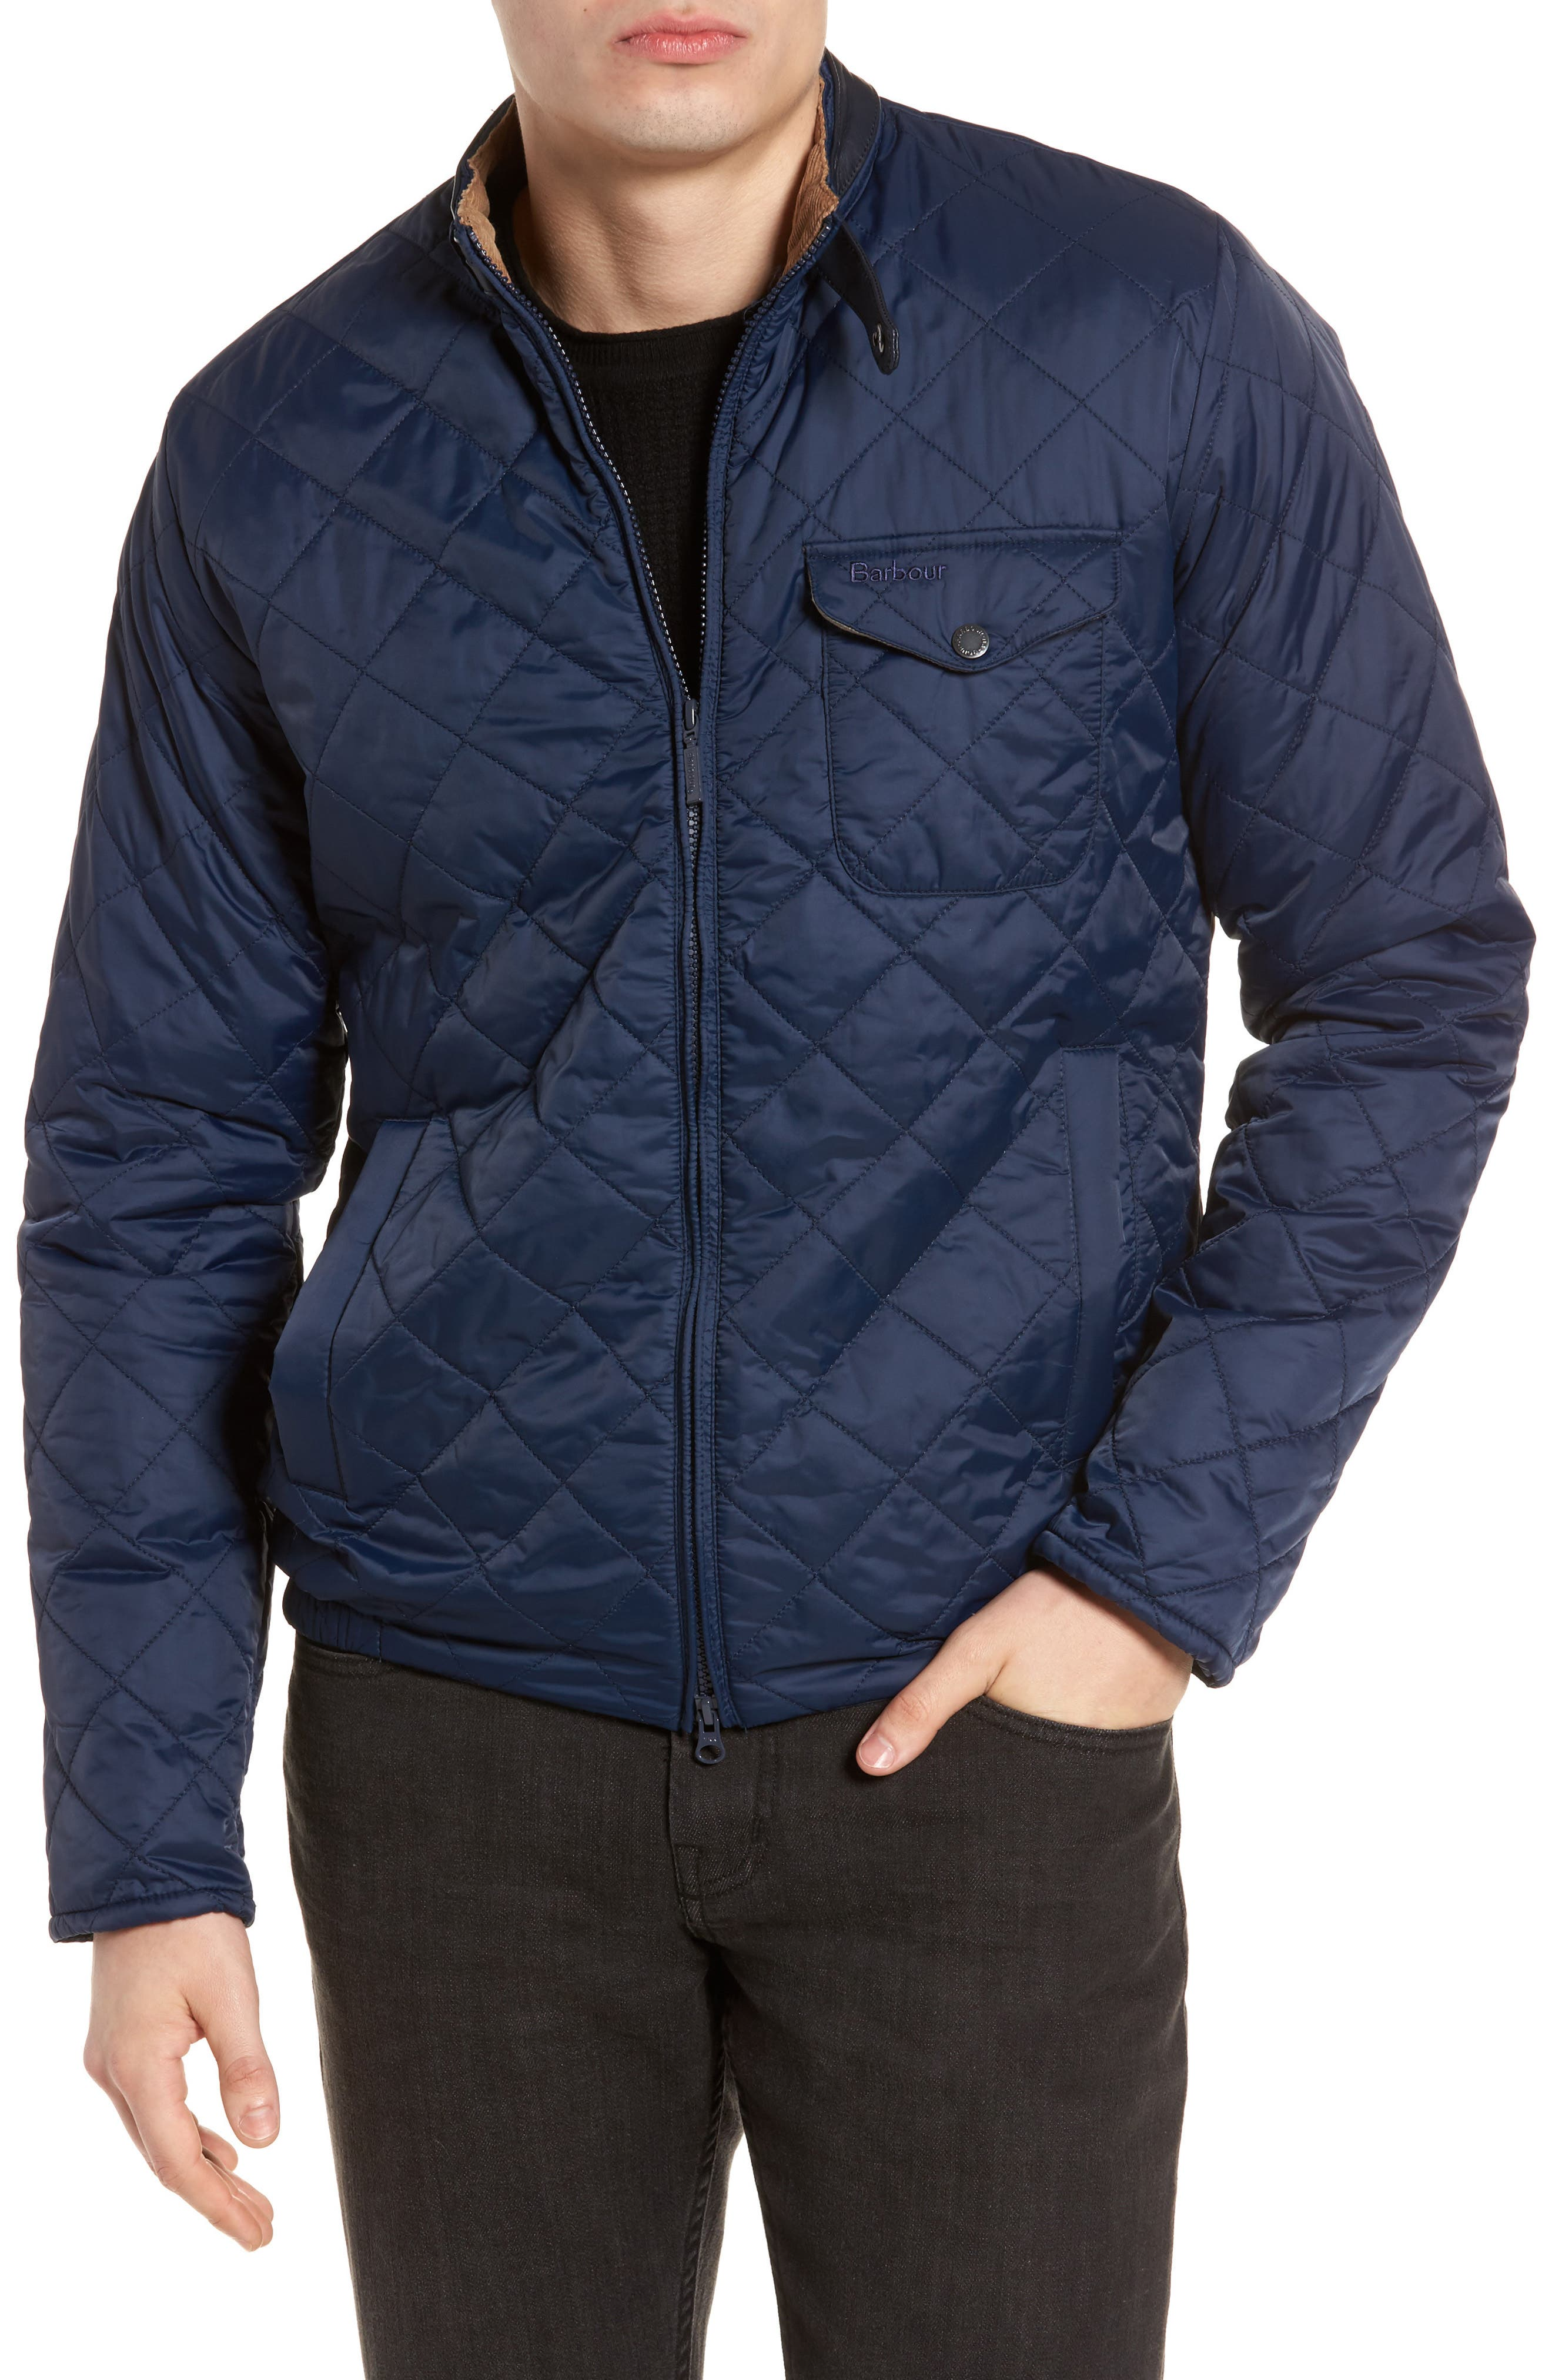 Ard Quilted Jacket,                             Main thumbnail 1, color,                             Royal Navy